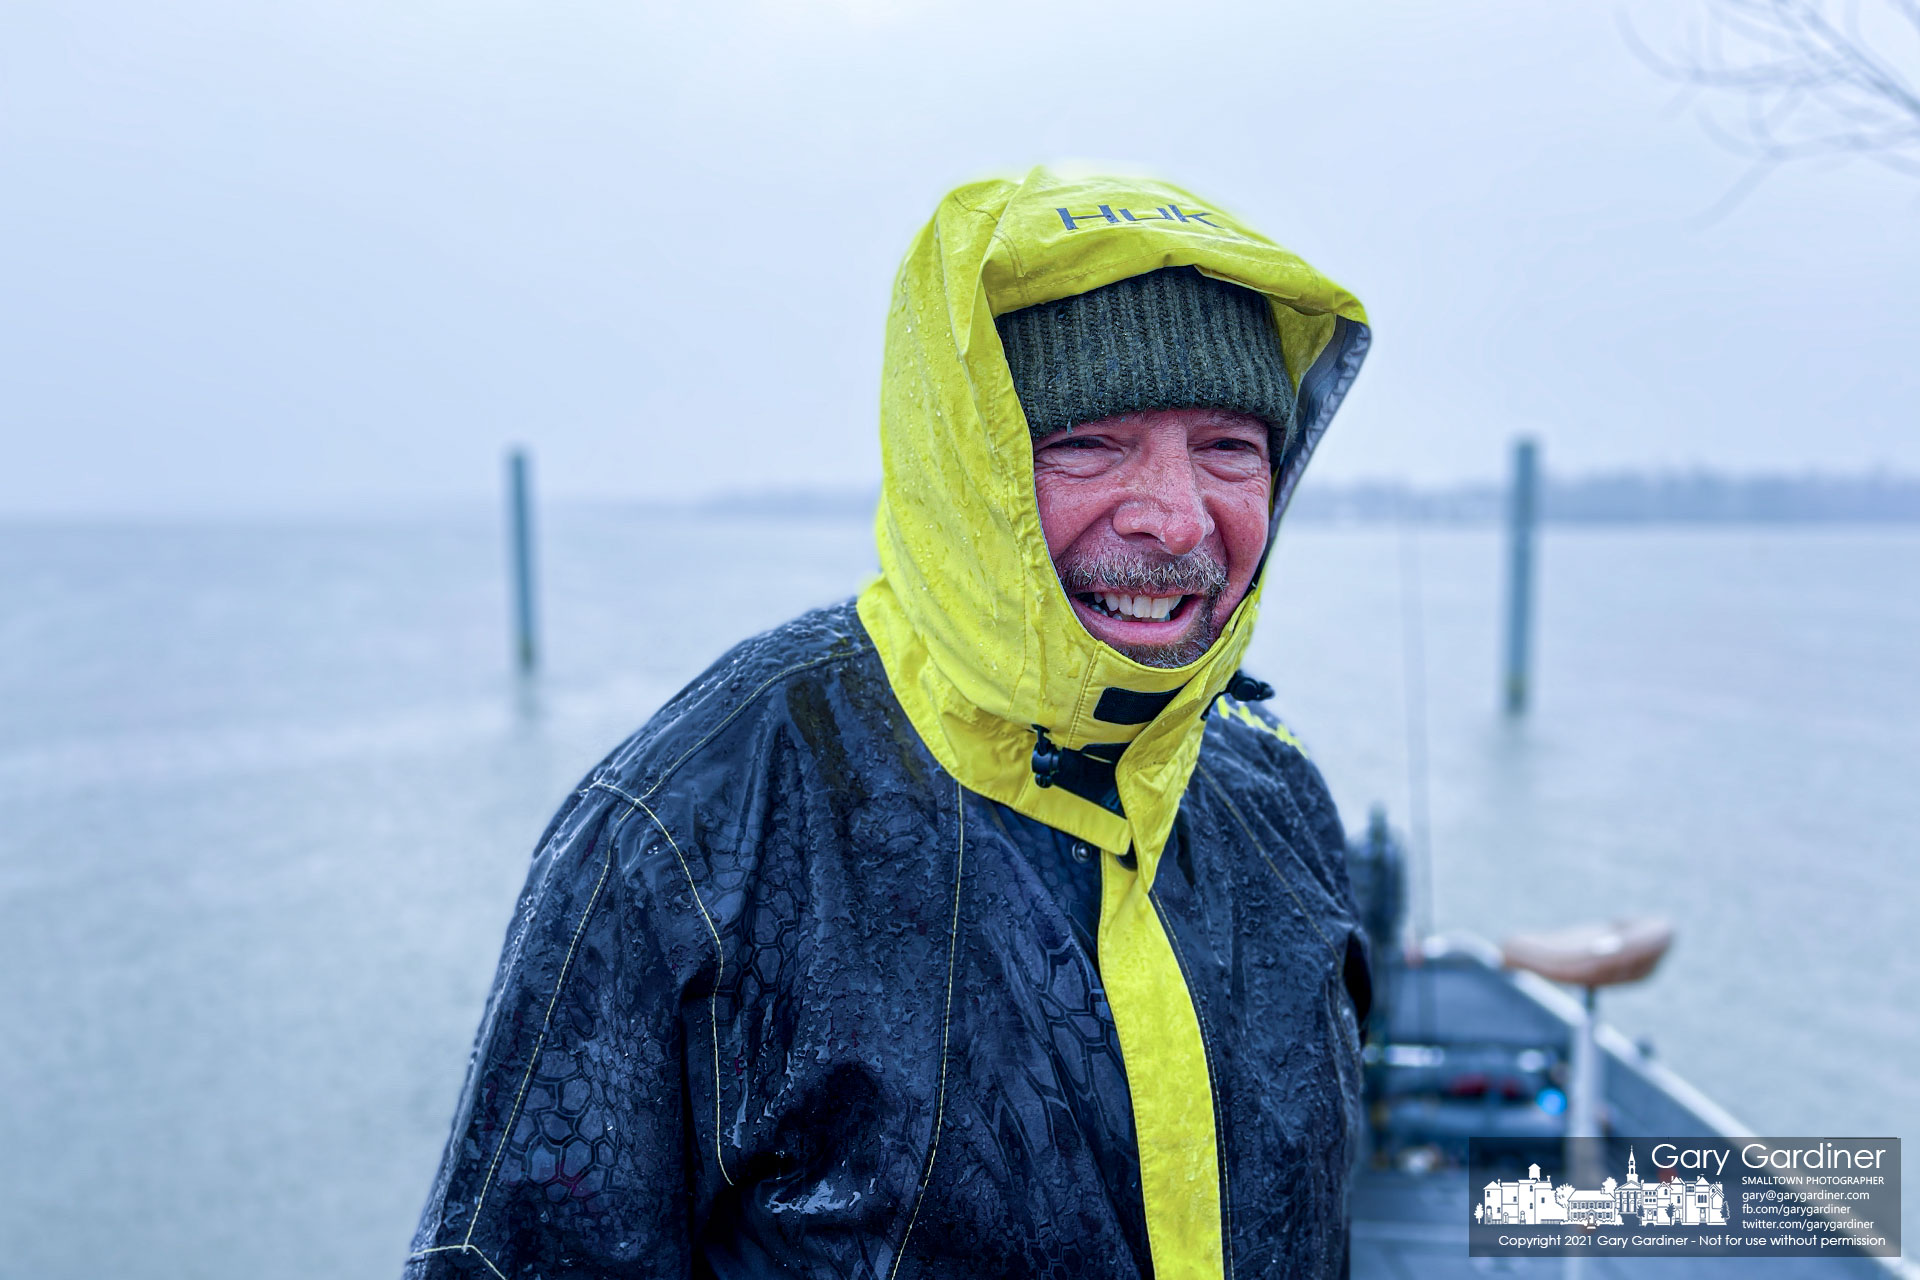 A fisherman smiles after tieing his boat off at the Red Bank boat ramp as he escapes a heavy rain that greeted him after a morning with little success on Hoover Reservoir. My Final Photo for March 11, 2021.